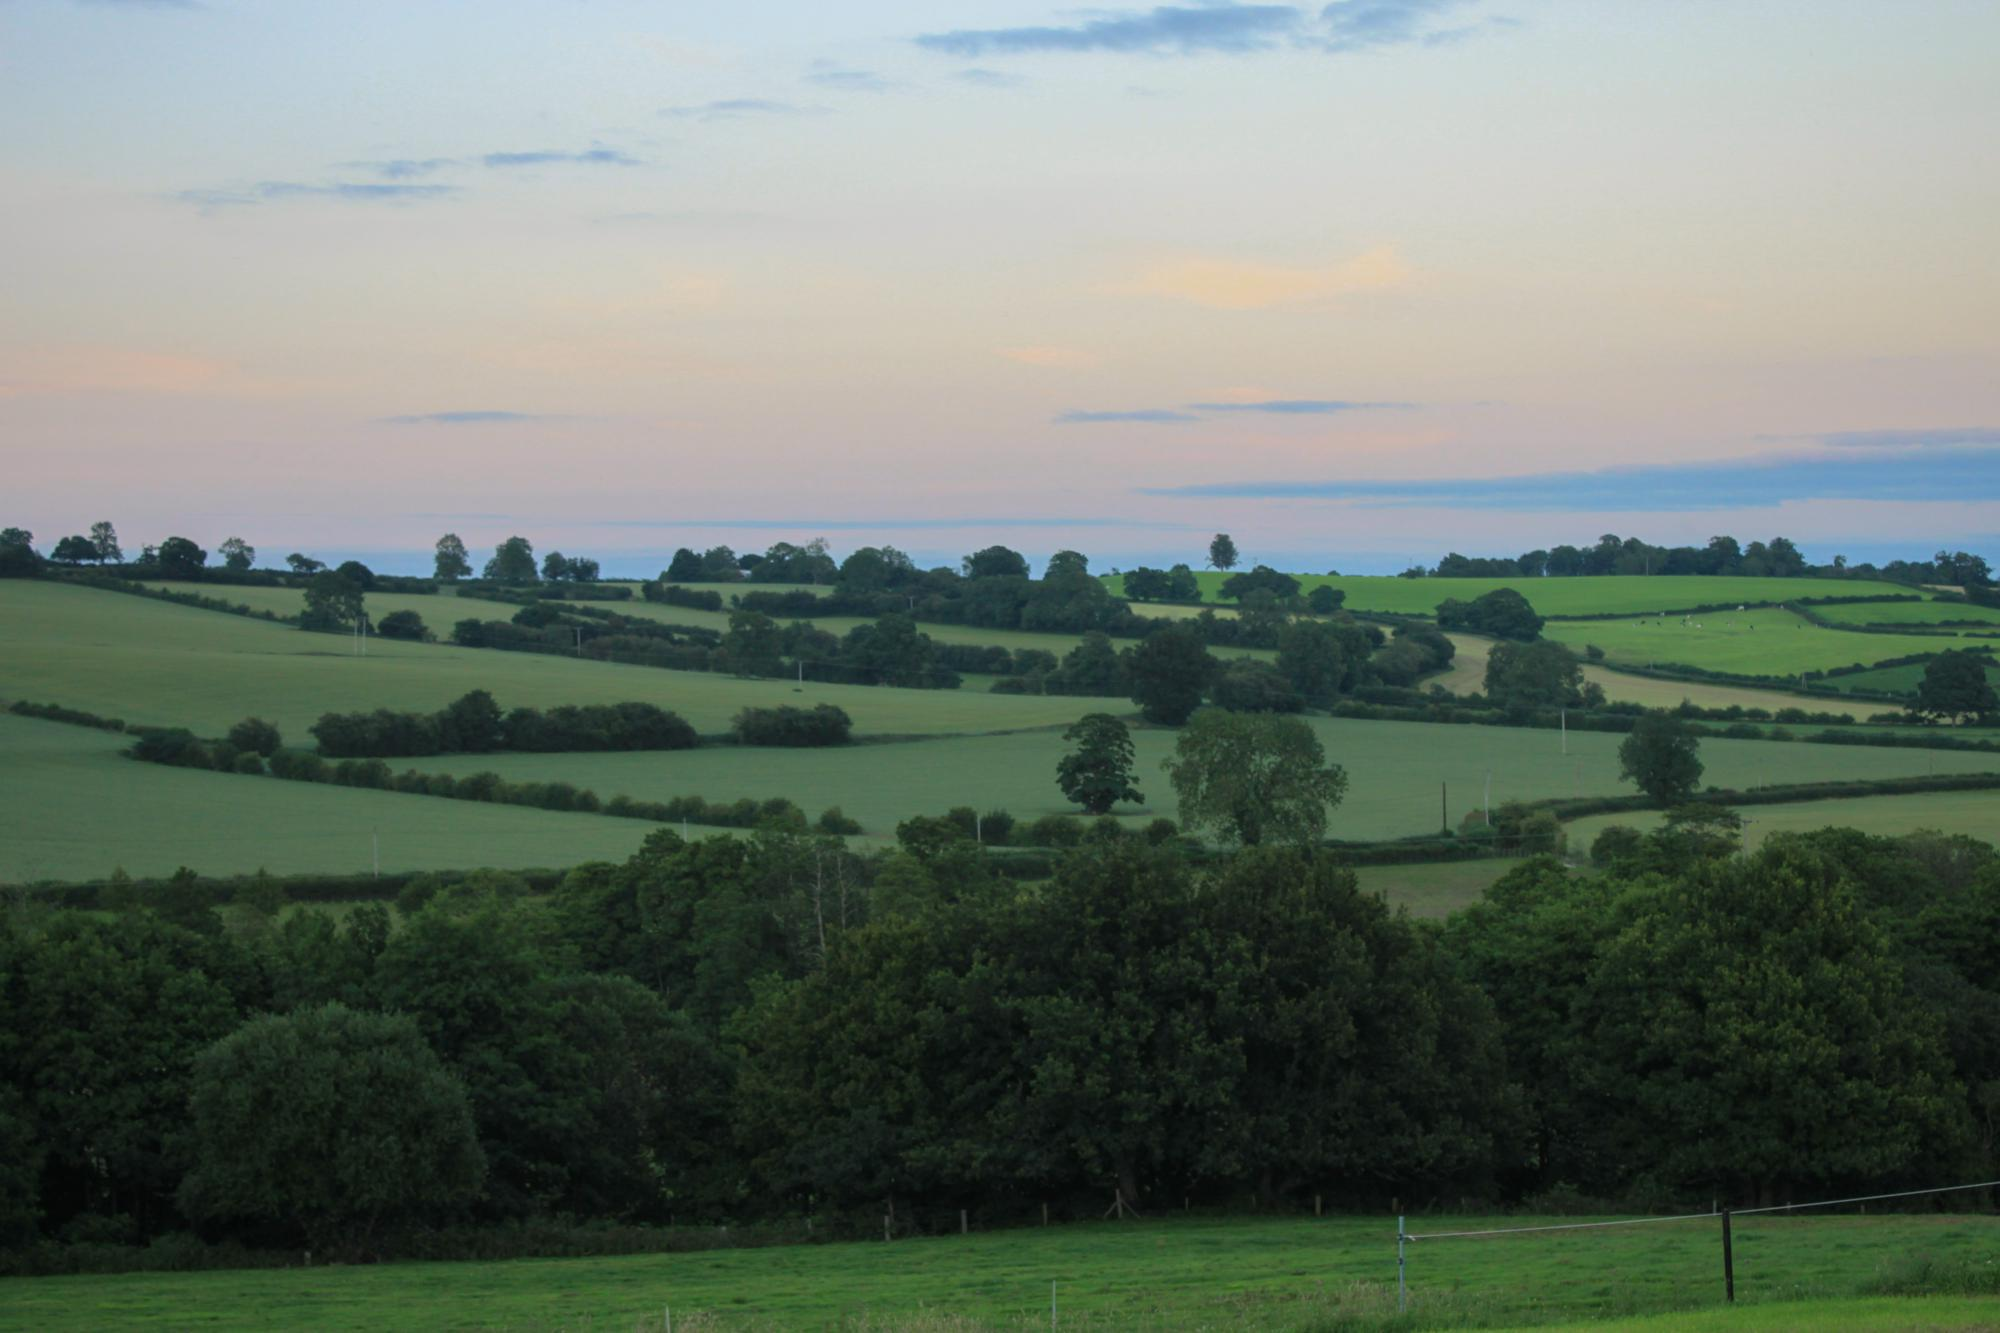 Uttoxeter Camping | Campsites in Uttoxeter, Staffordshire